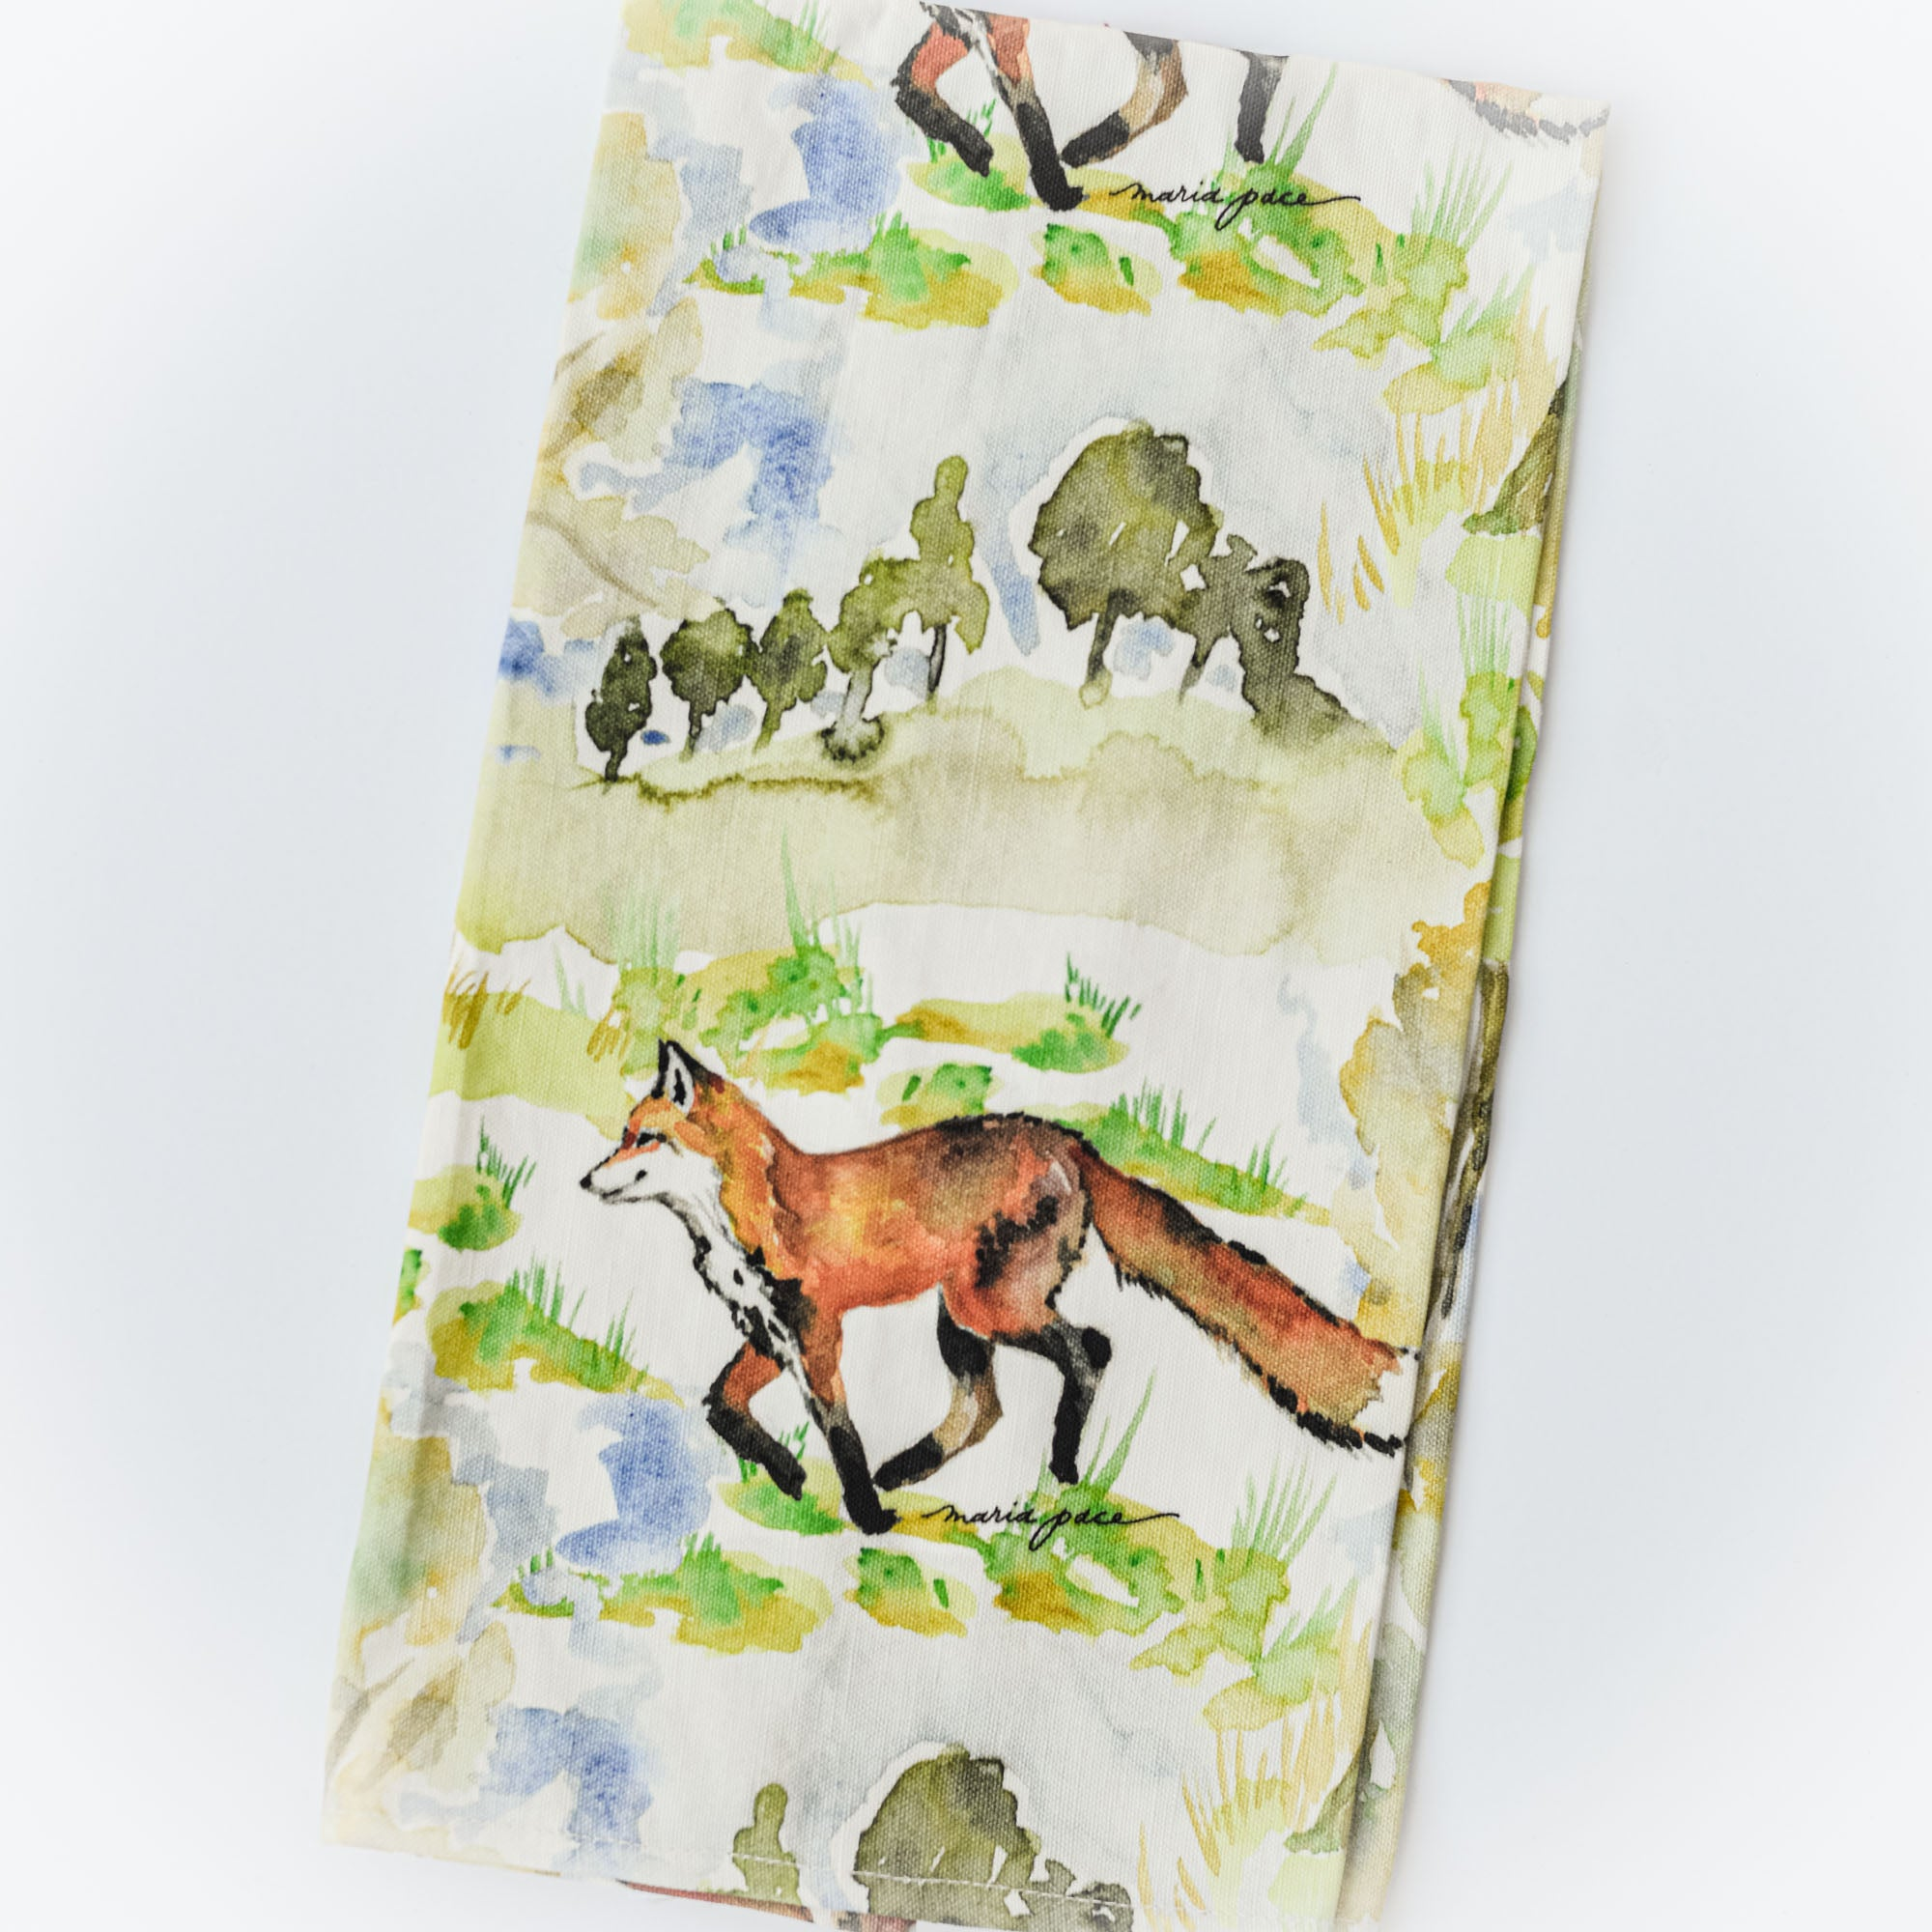 Fox on an Adventure Tea Towel, The Maria Pace Collection for the Wine & Country Shop